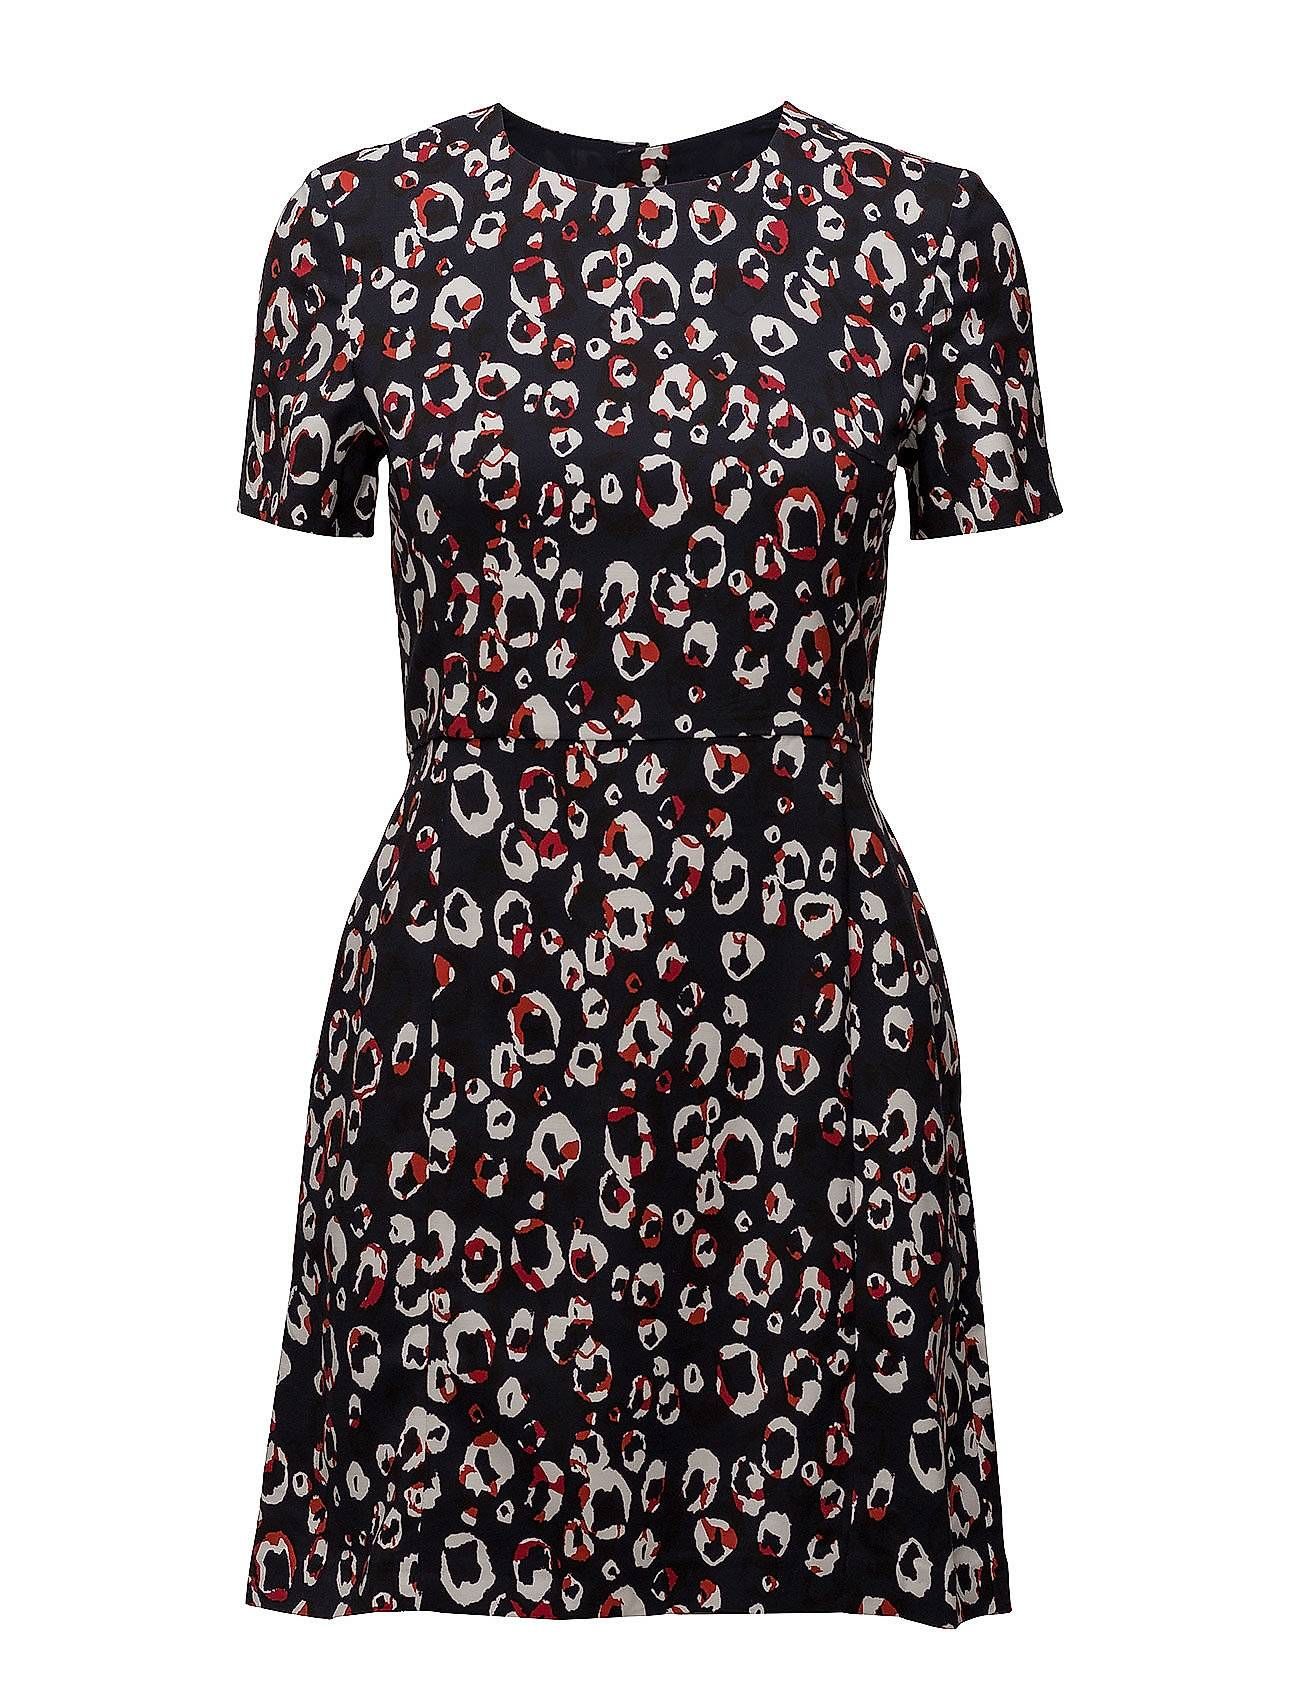 French Connection Chira Stretch Short Sleeve Dress